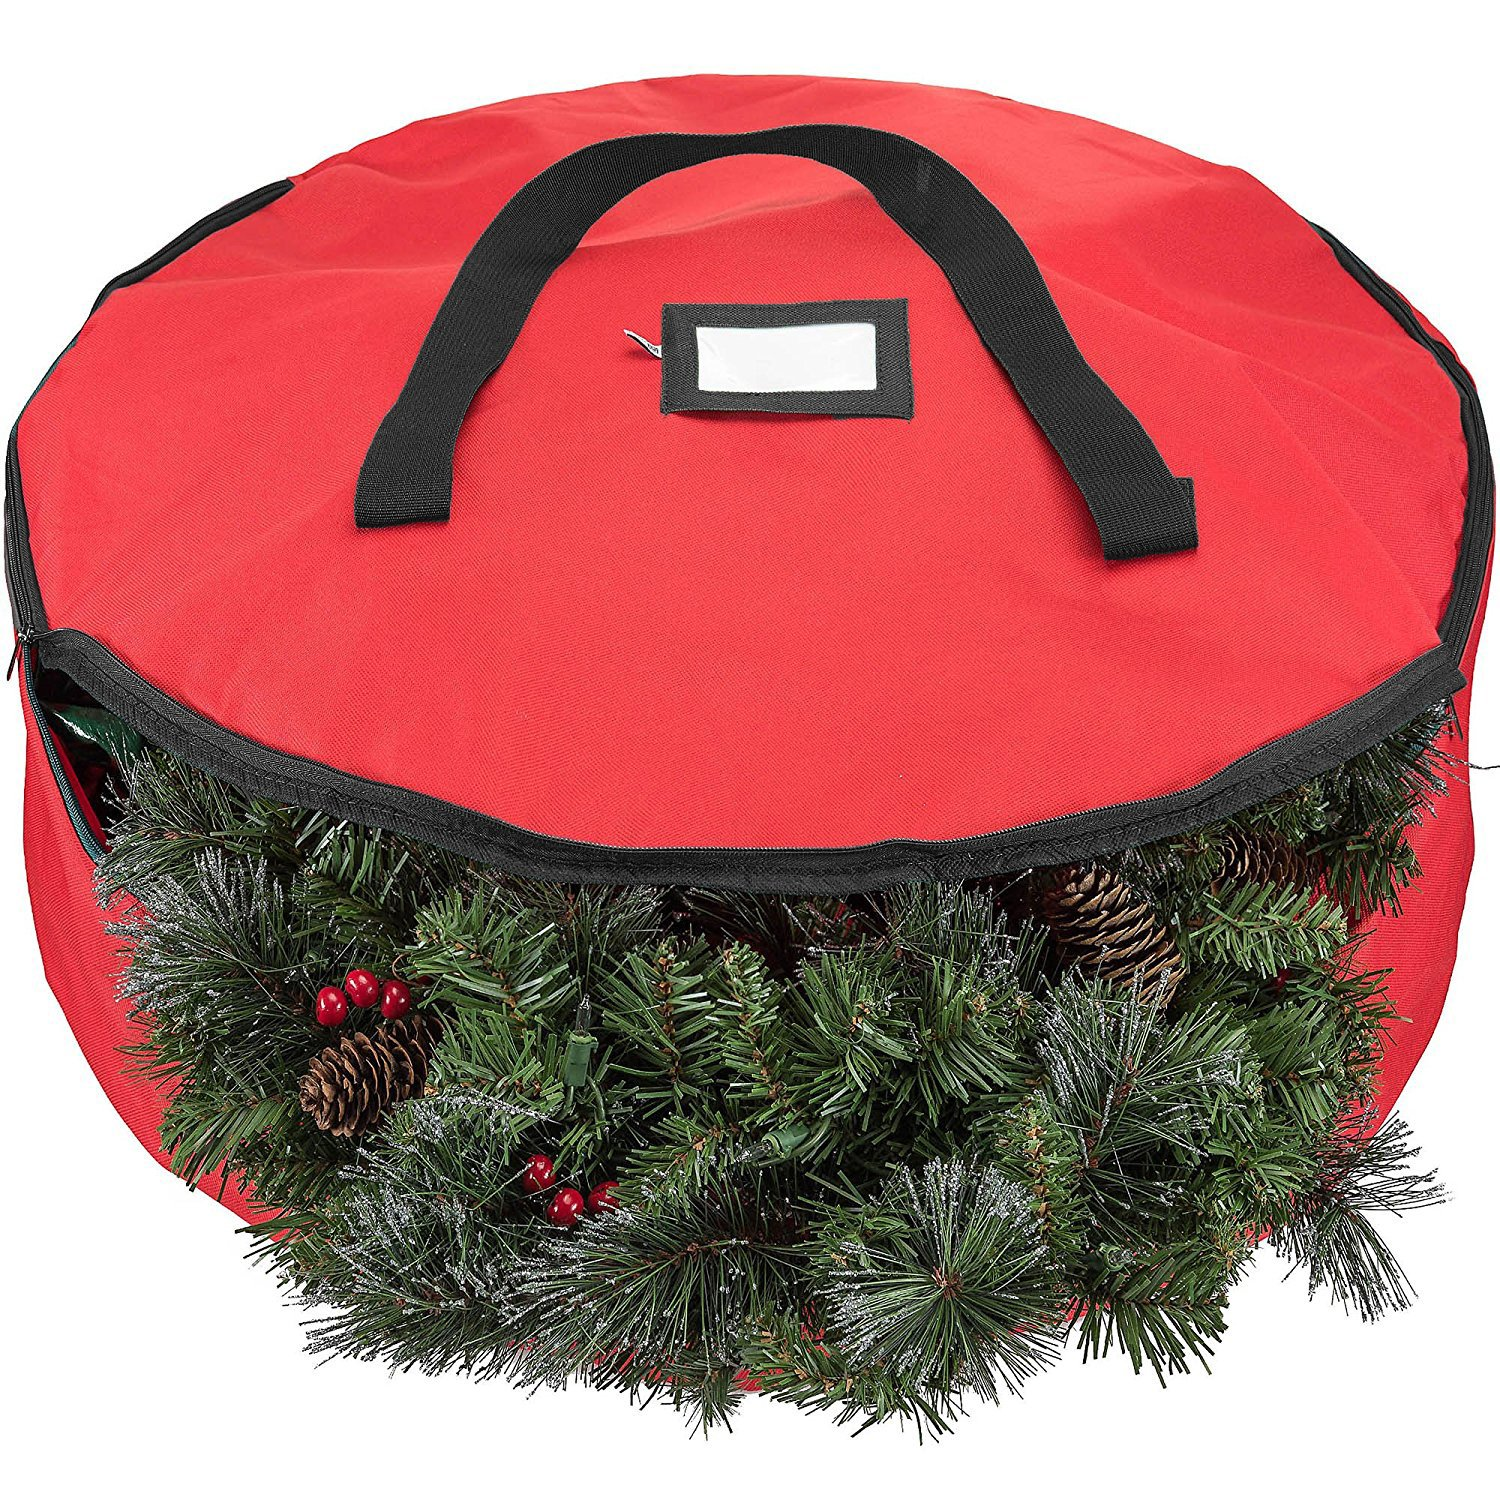 Zober Christmas Holiday Wreath Storage Bag - Premium 600D Oxford Tear Resistant Fabric Storage Bag for Christmas wreath with Sleek Zipper Featuring Transparent Card Slot for Labeling | 30 x 30 x 8 Red